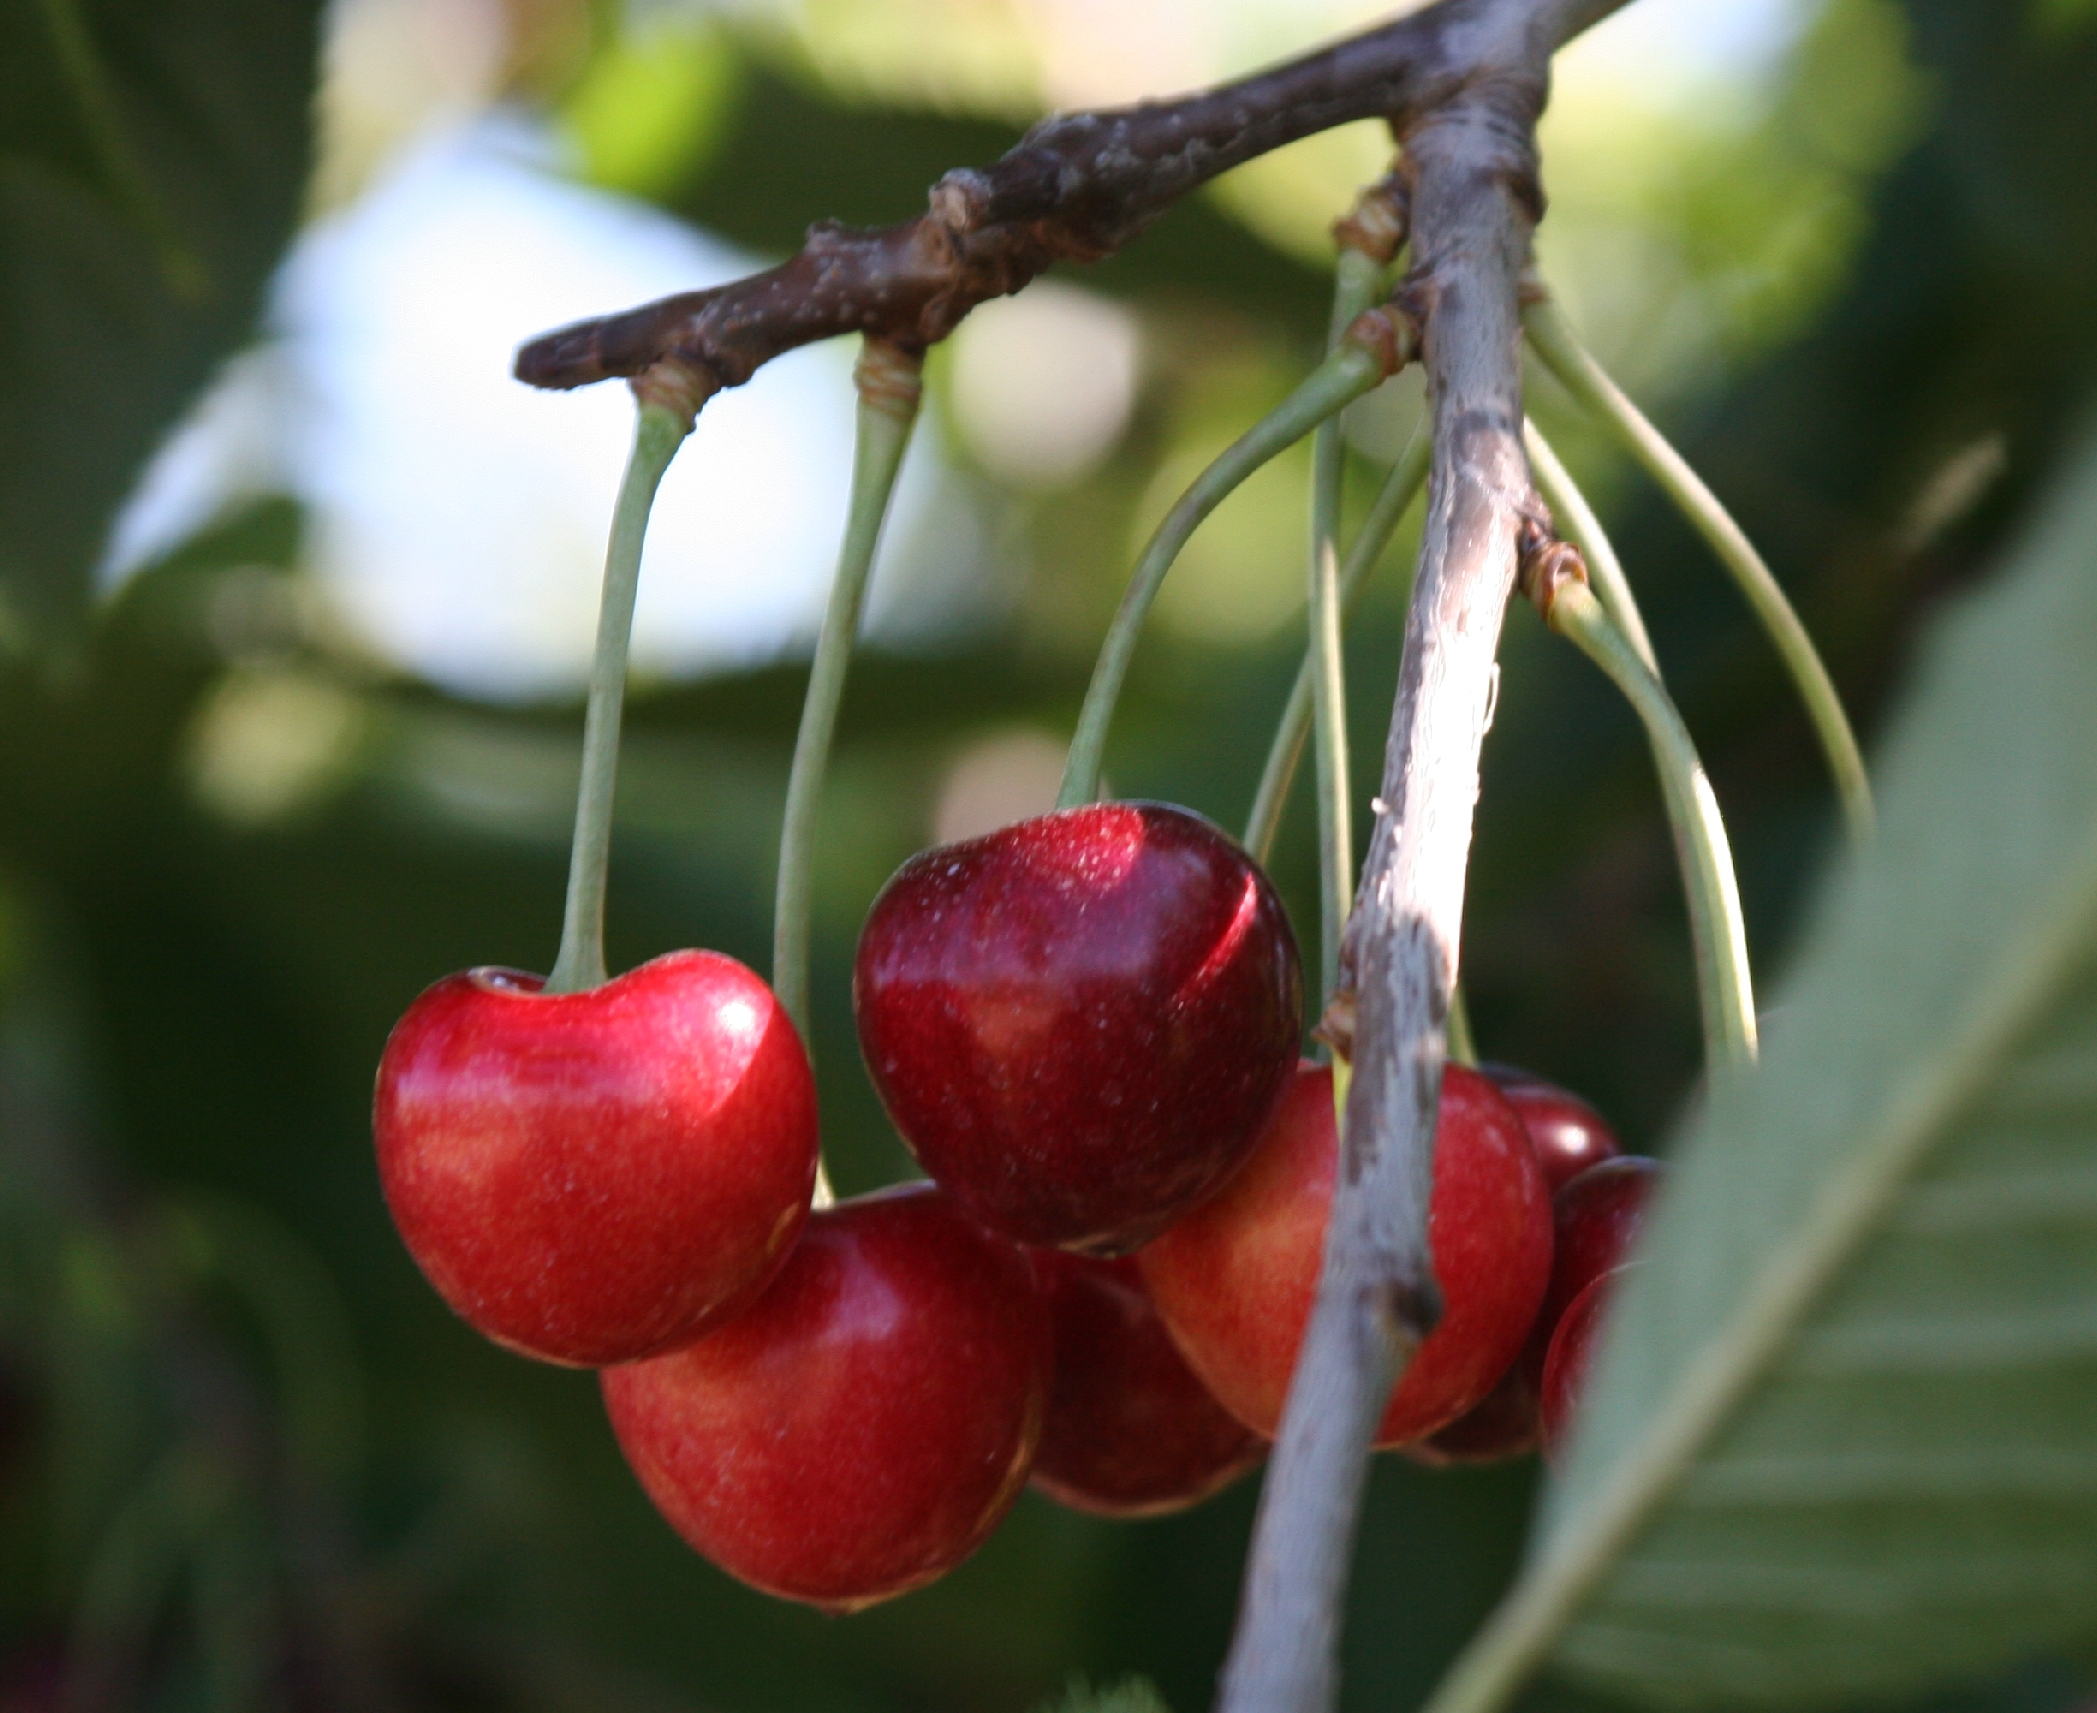 Growing The Best Cherries In The World Or: We'll Sleep